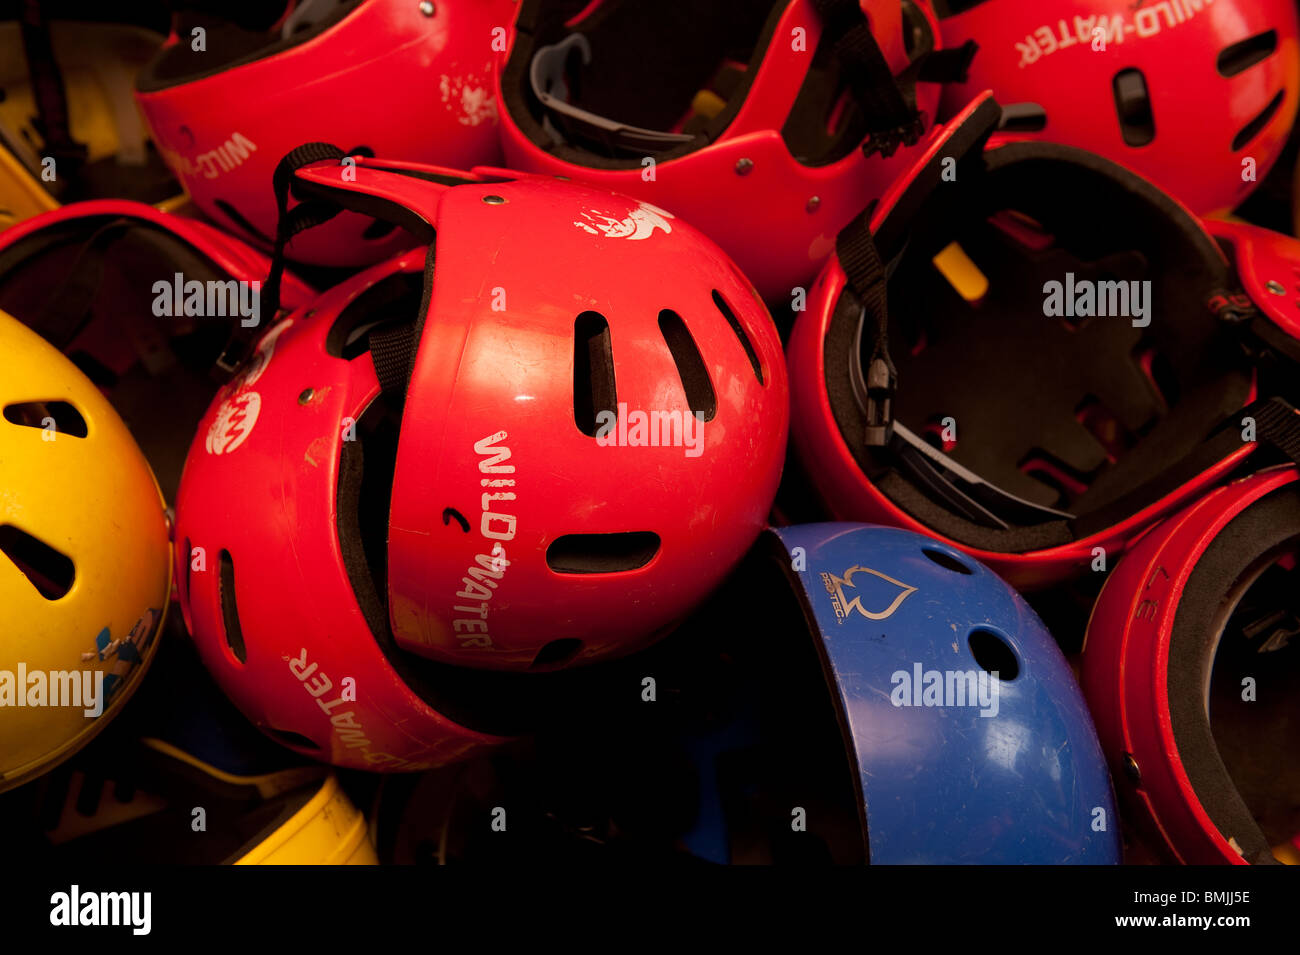 Helmets, Safety equipment at The Urdd outward bound activity Centre, Glanllyn, Bala lake, Gwynedd North Wales UK - Stock Image